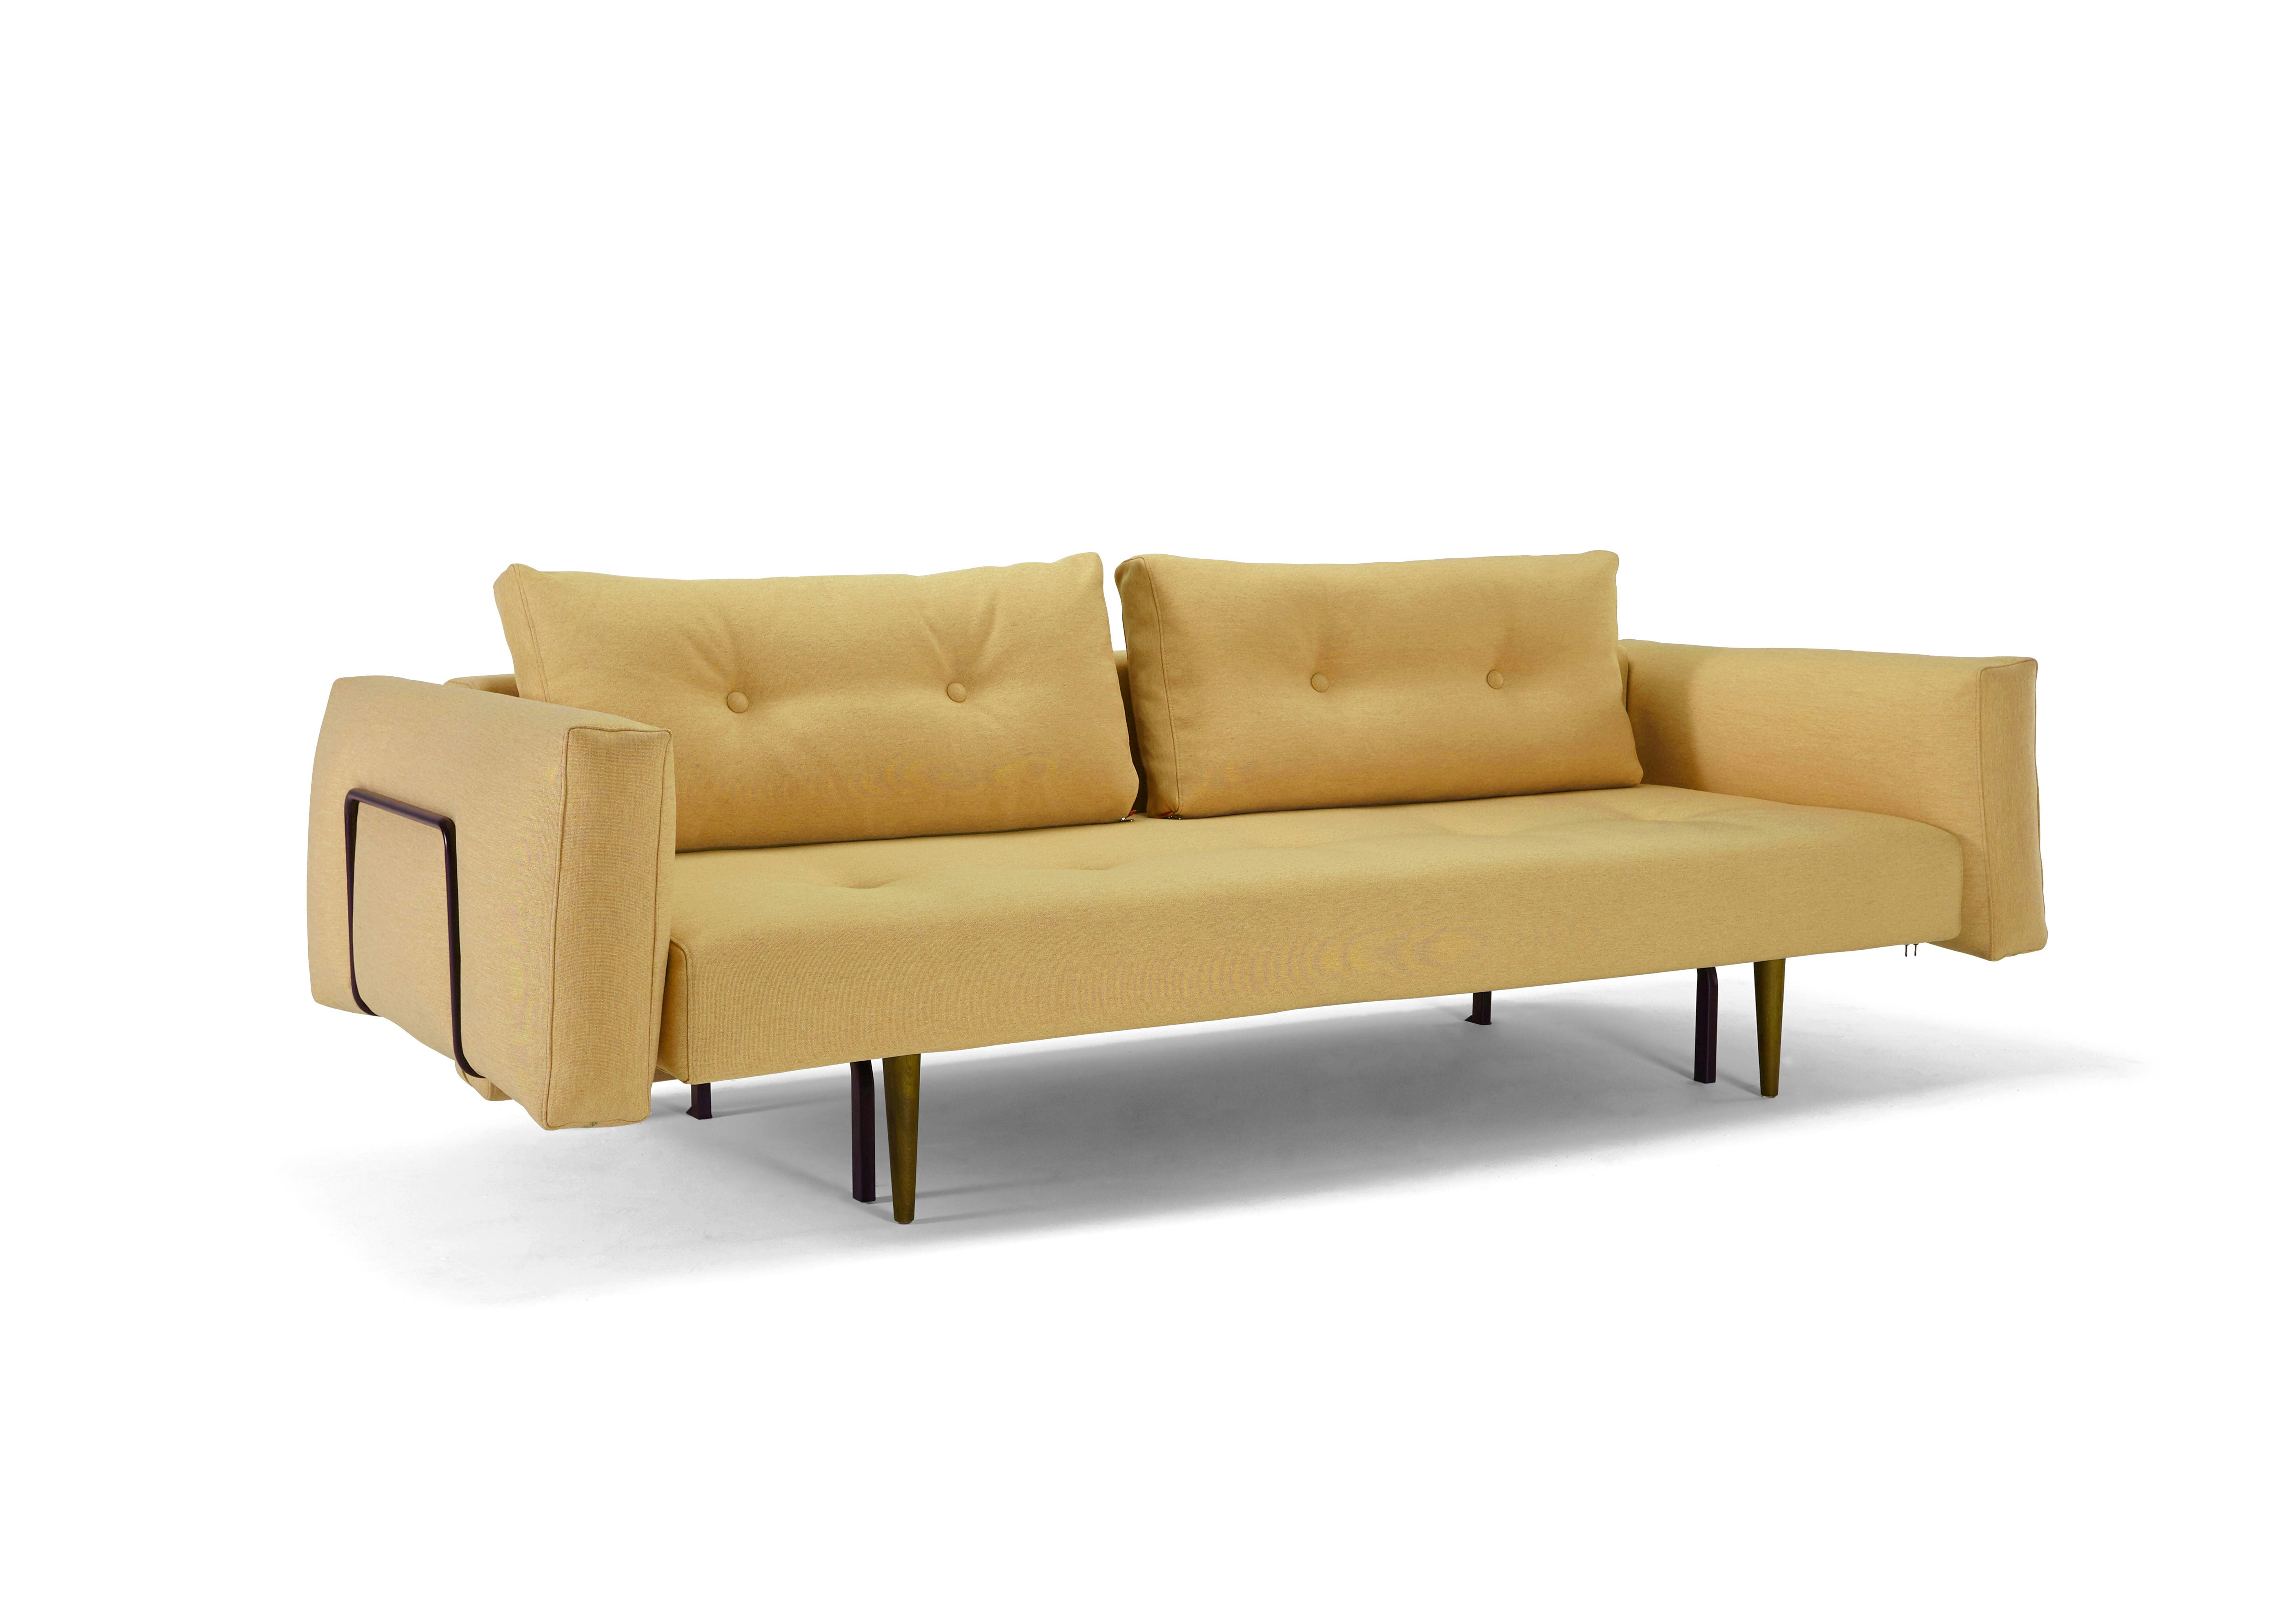 Recast Plus Sofa Bed W Arms Full Size Soft Mustard Flower By Innovation